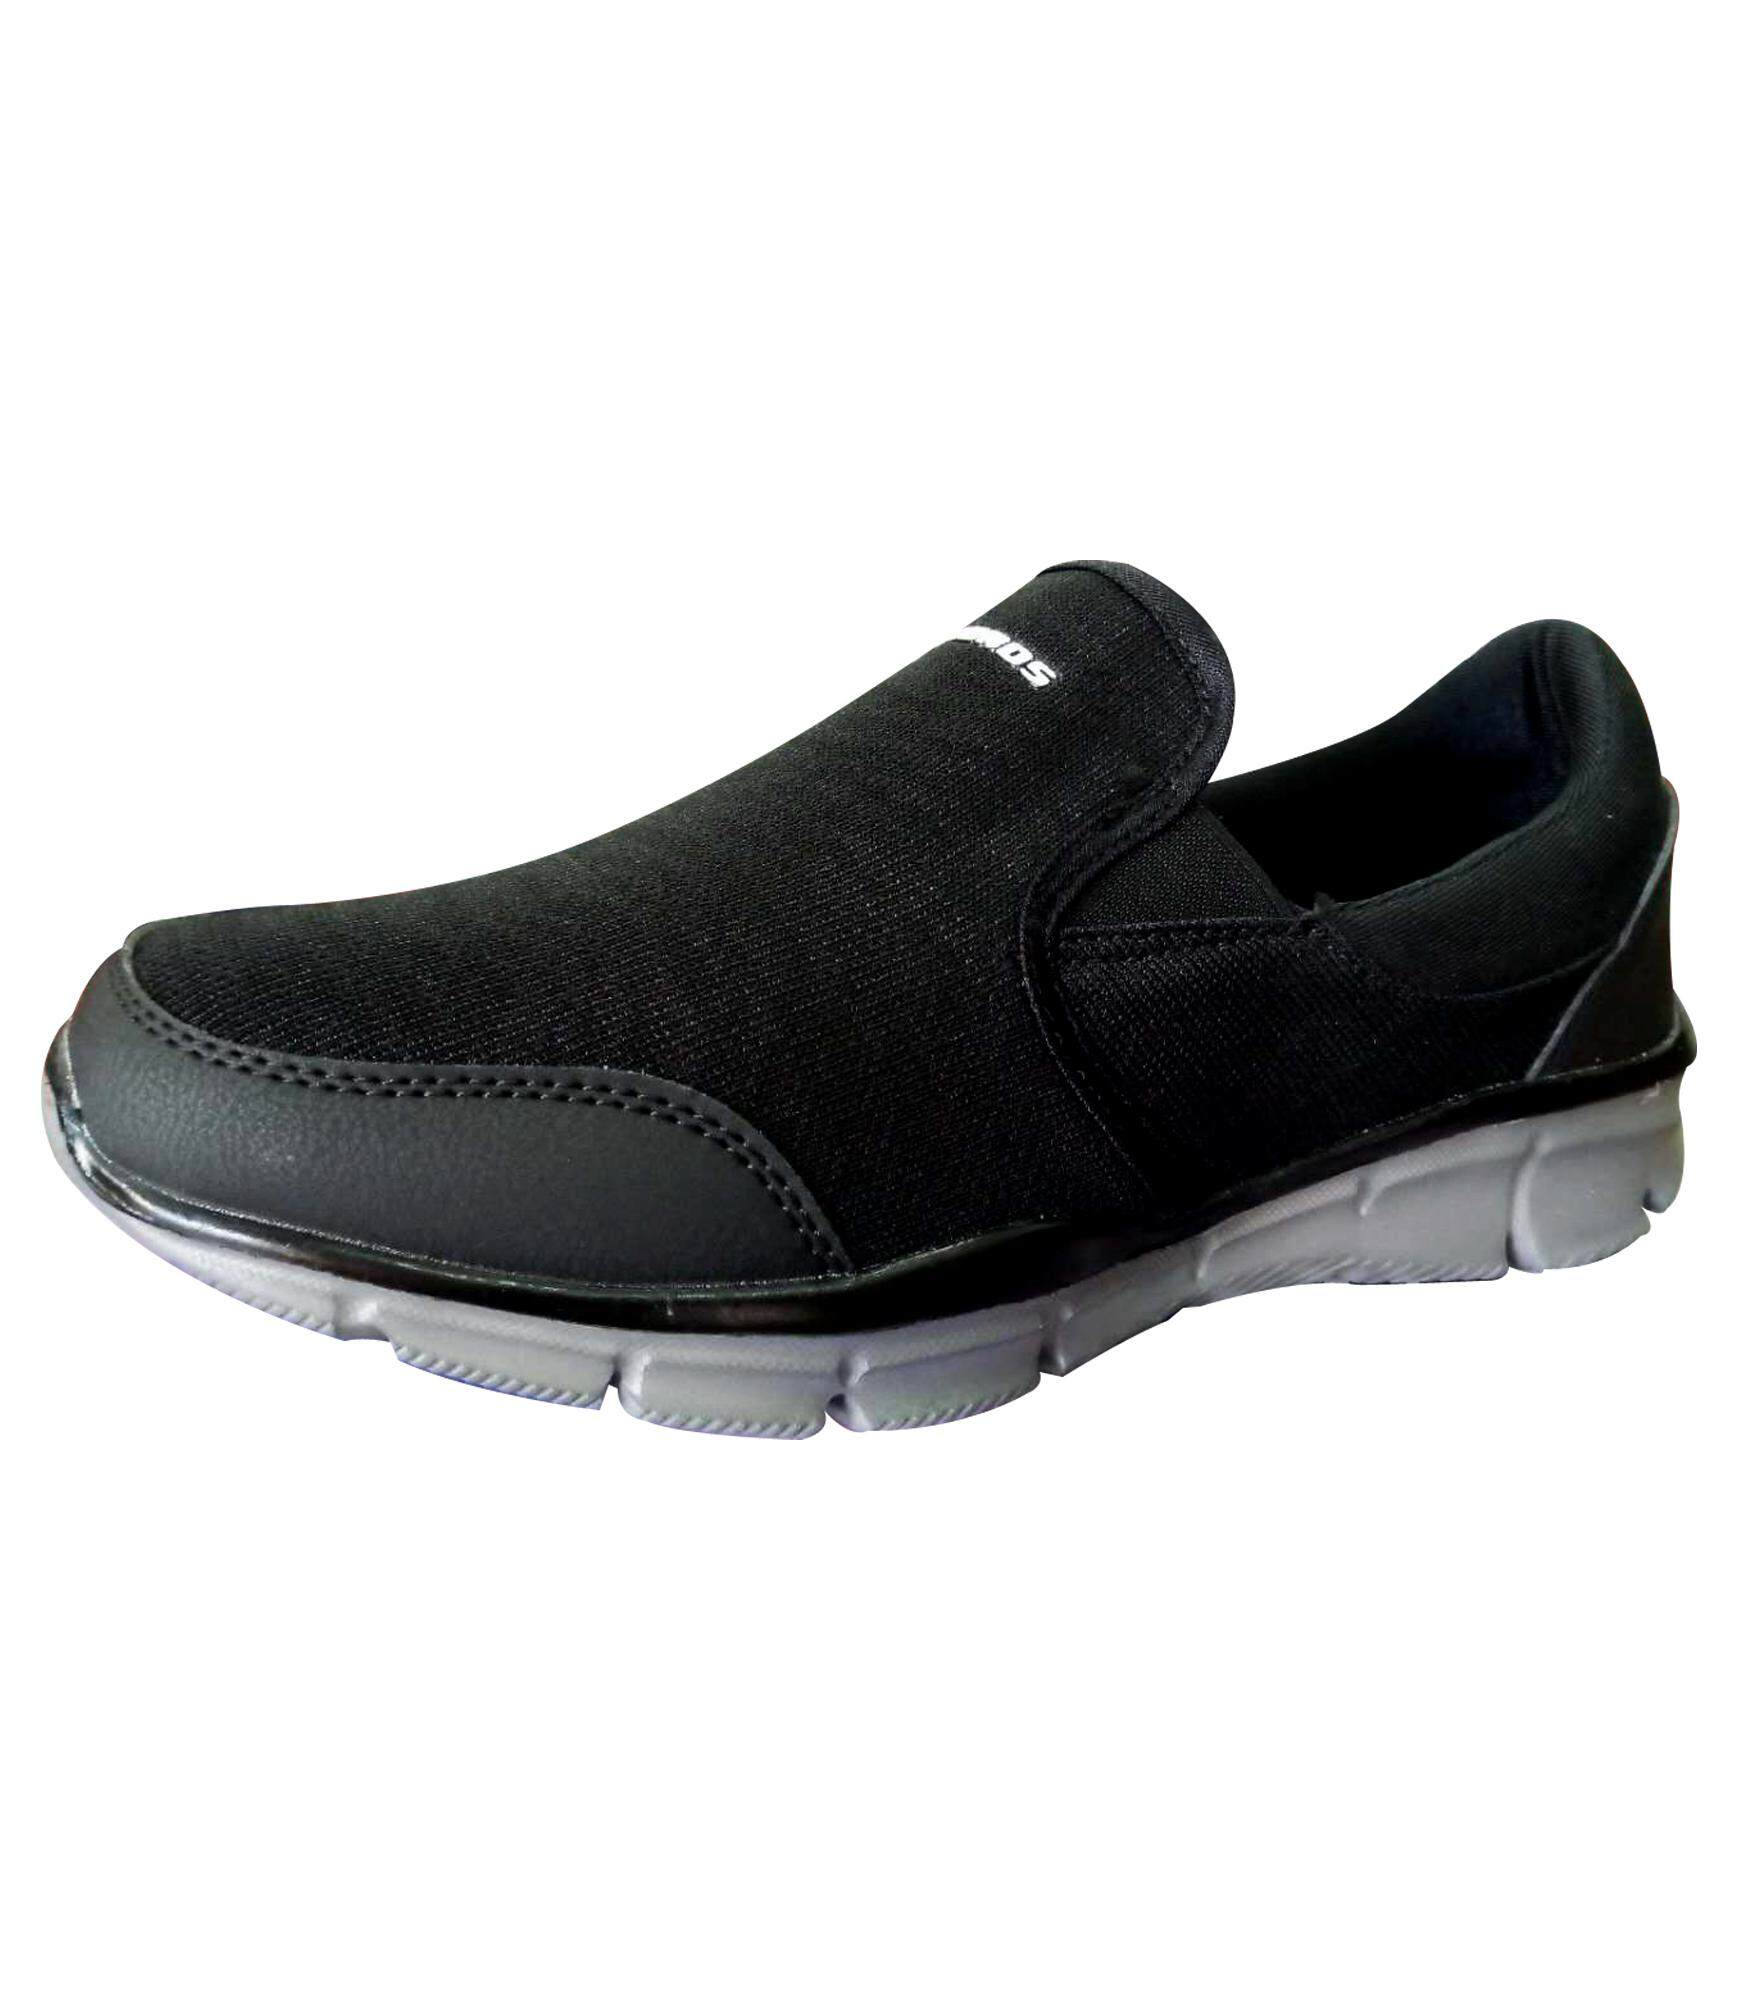 Ambros Glider Men's Casual Walking Shoes - Black